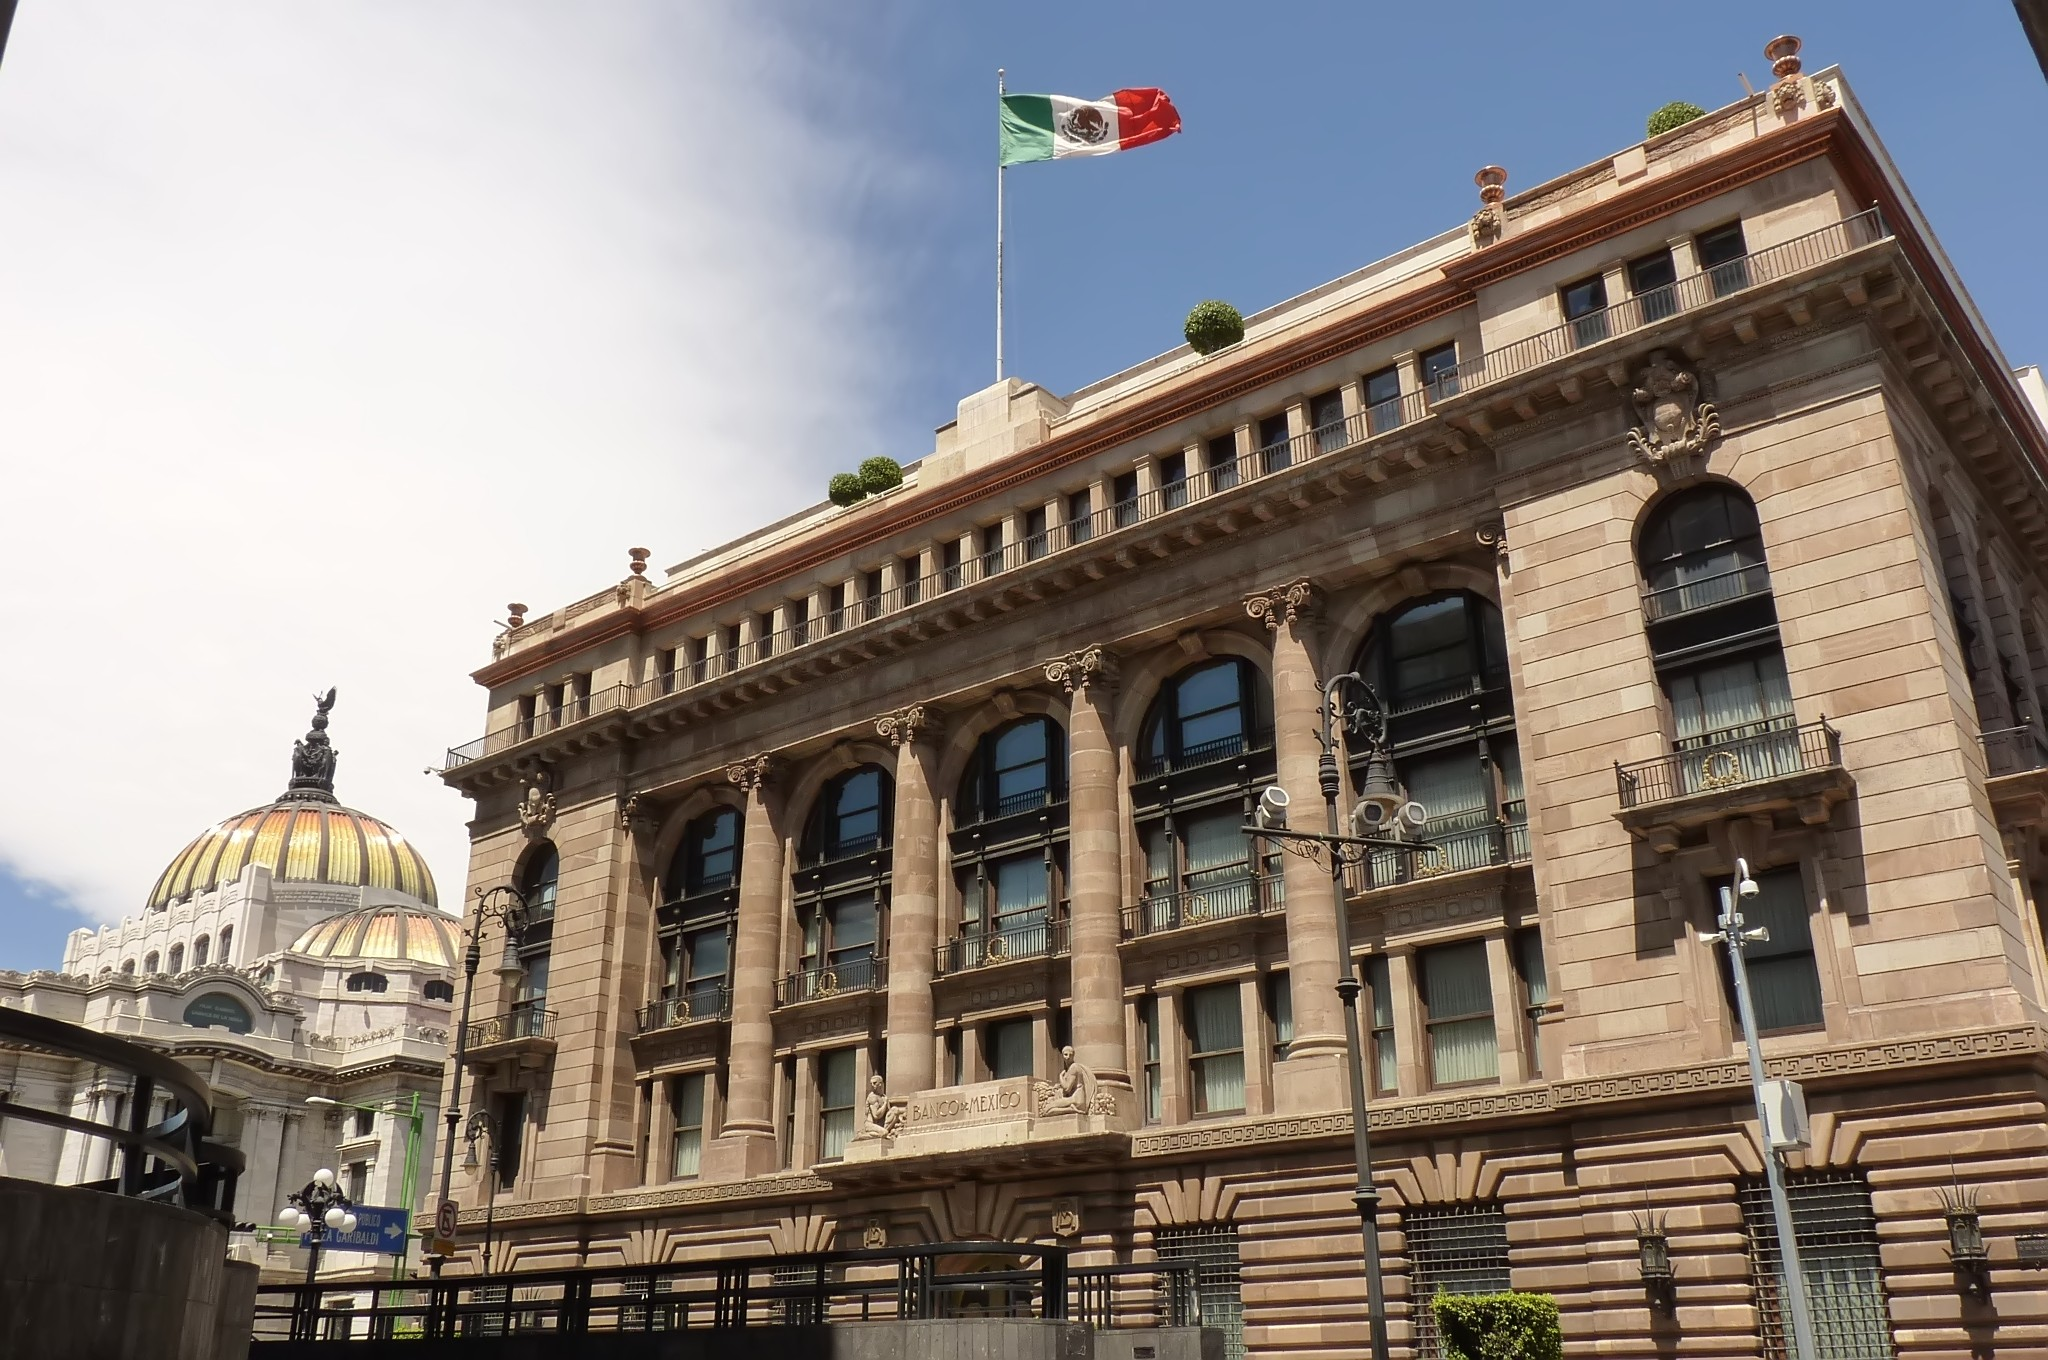 https://upload.wikimedia.org/wikipedia/commons/3/3c/Banco_de_M%C3%A9xico_%26_INBA.jpg